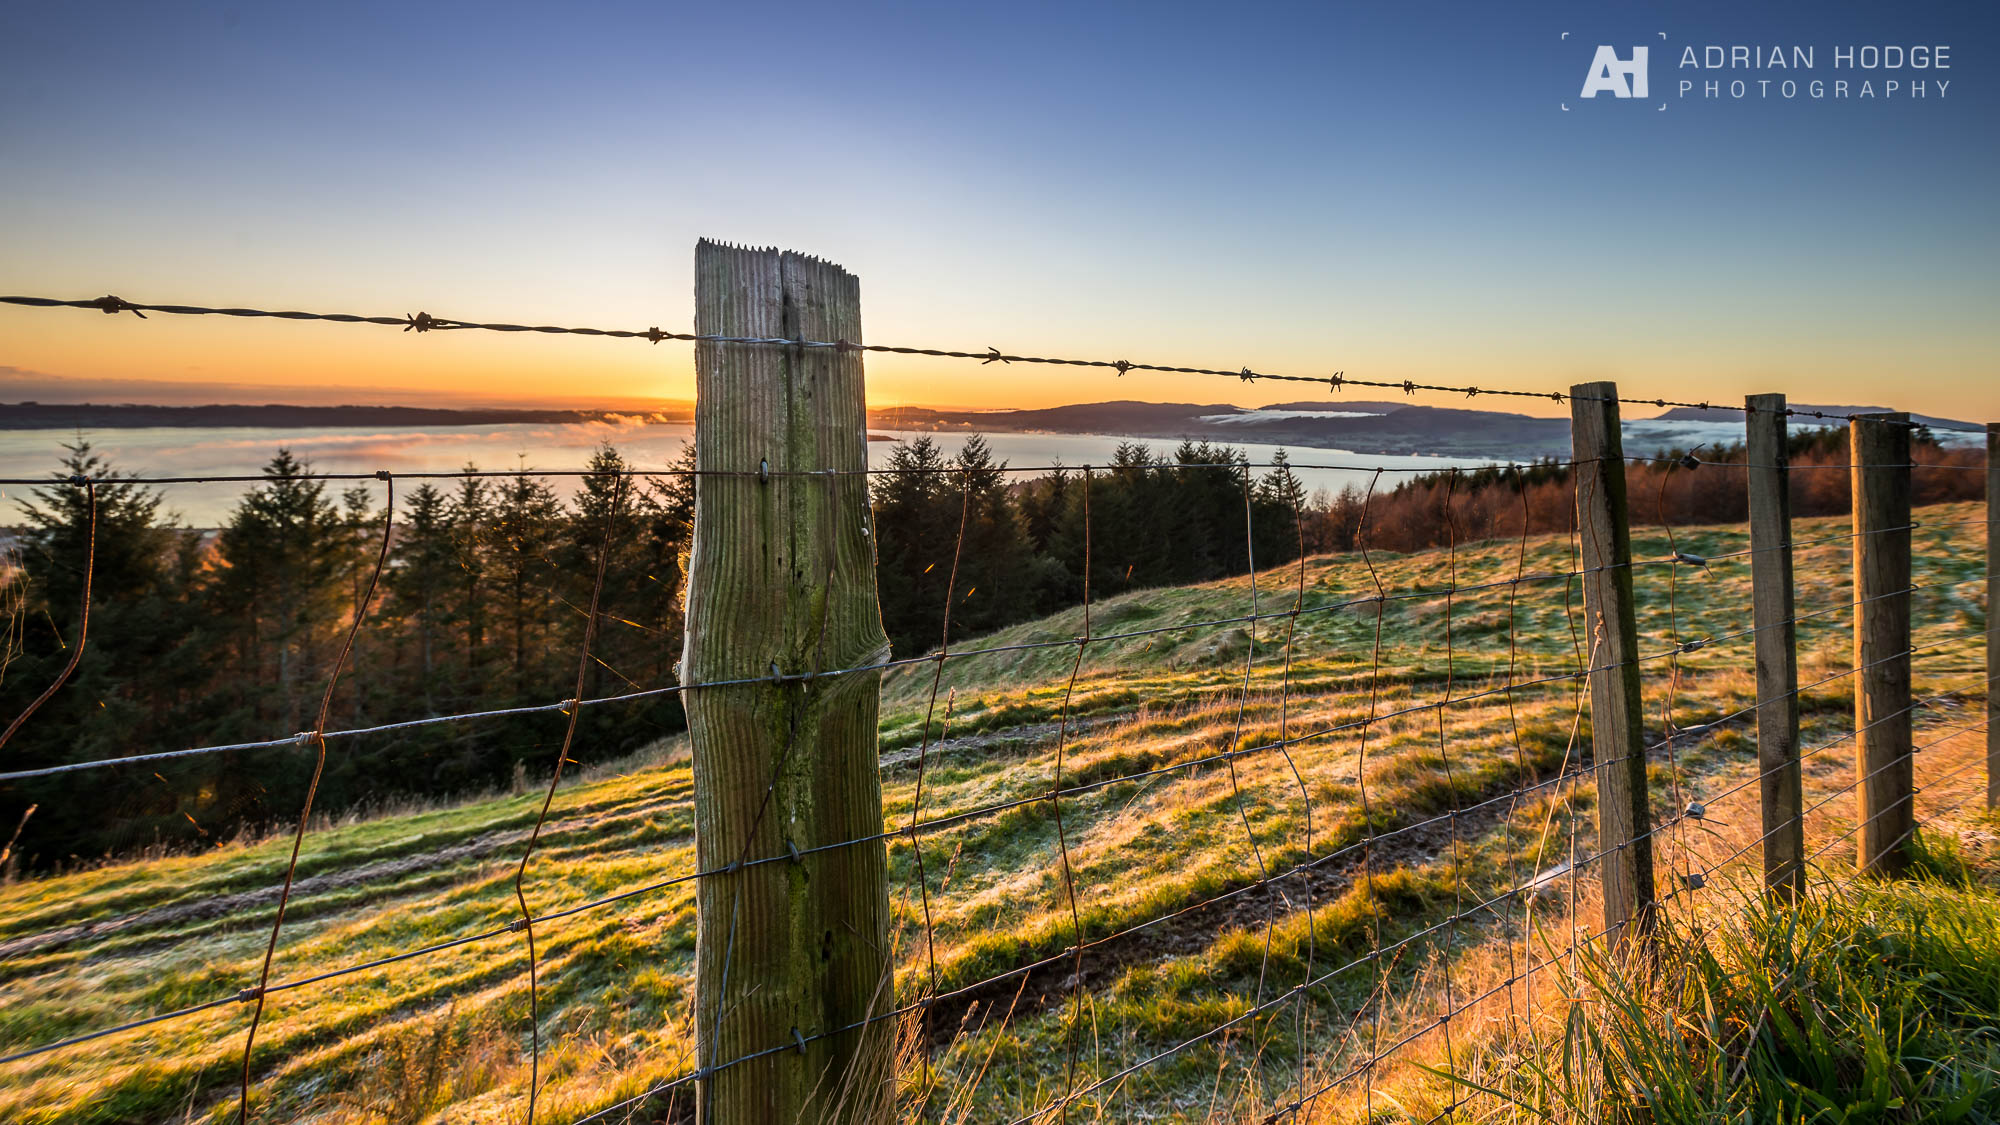 Fenced Off - Mountain Road Sunrise - Adrian Hodge Photography